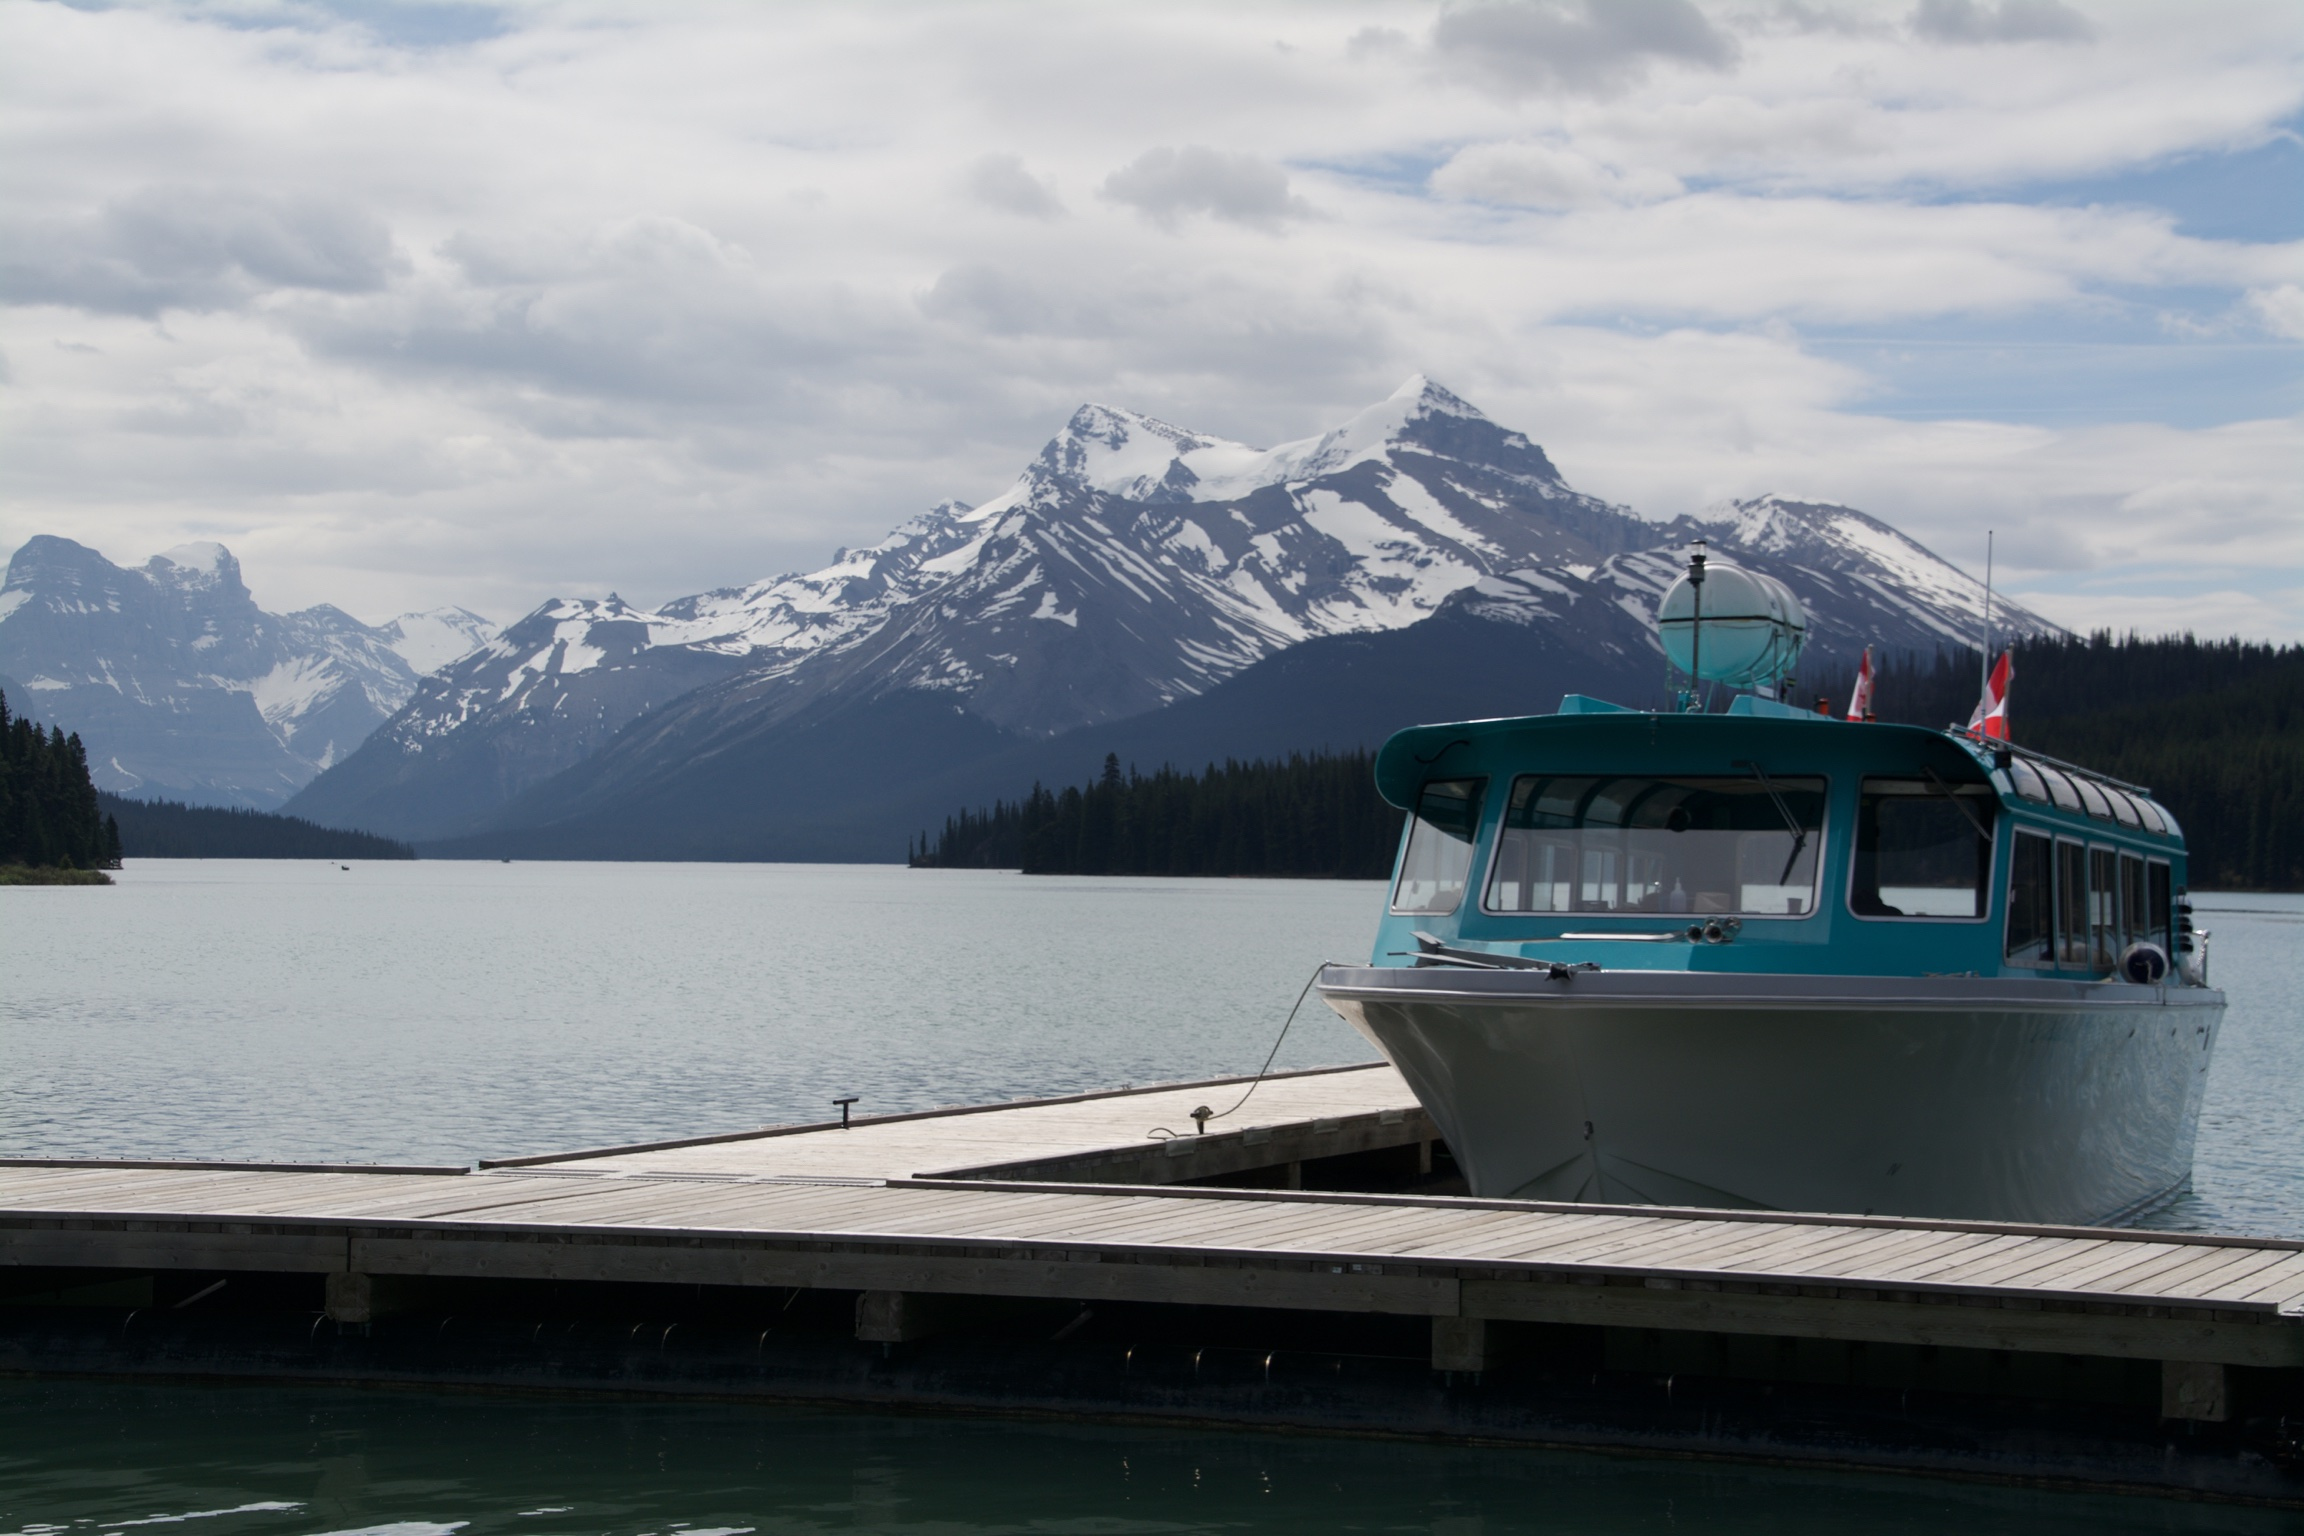 Boat, Maligne Lake, Jasper National Park, Canada